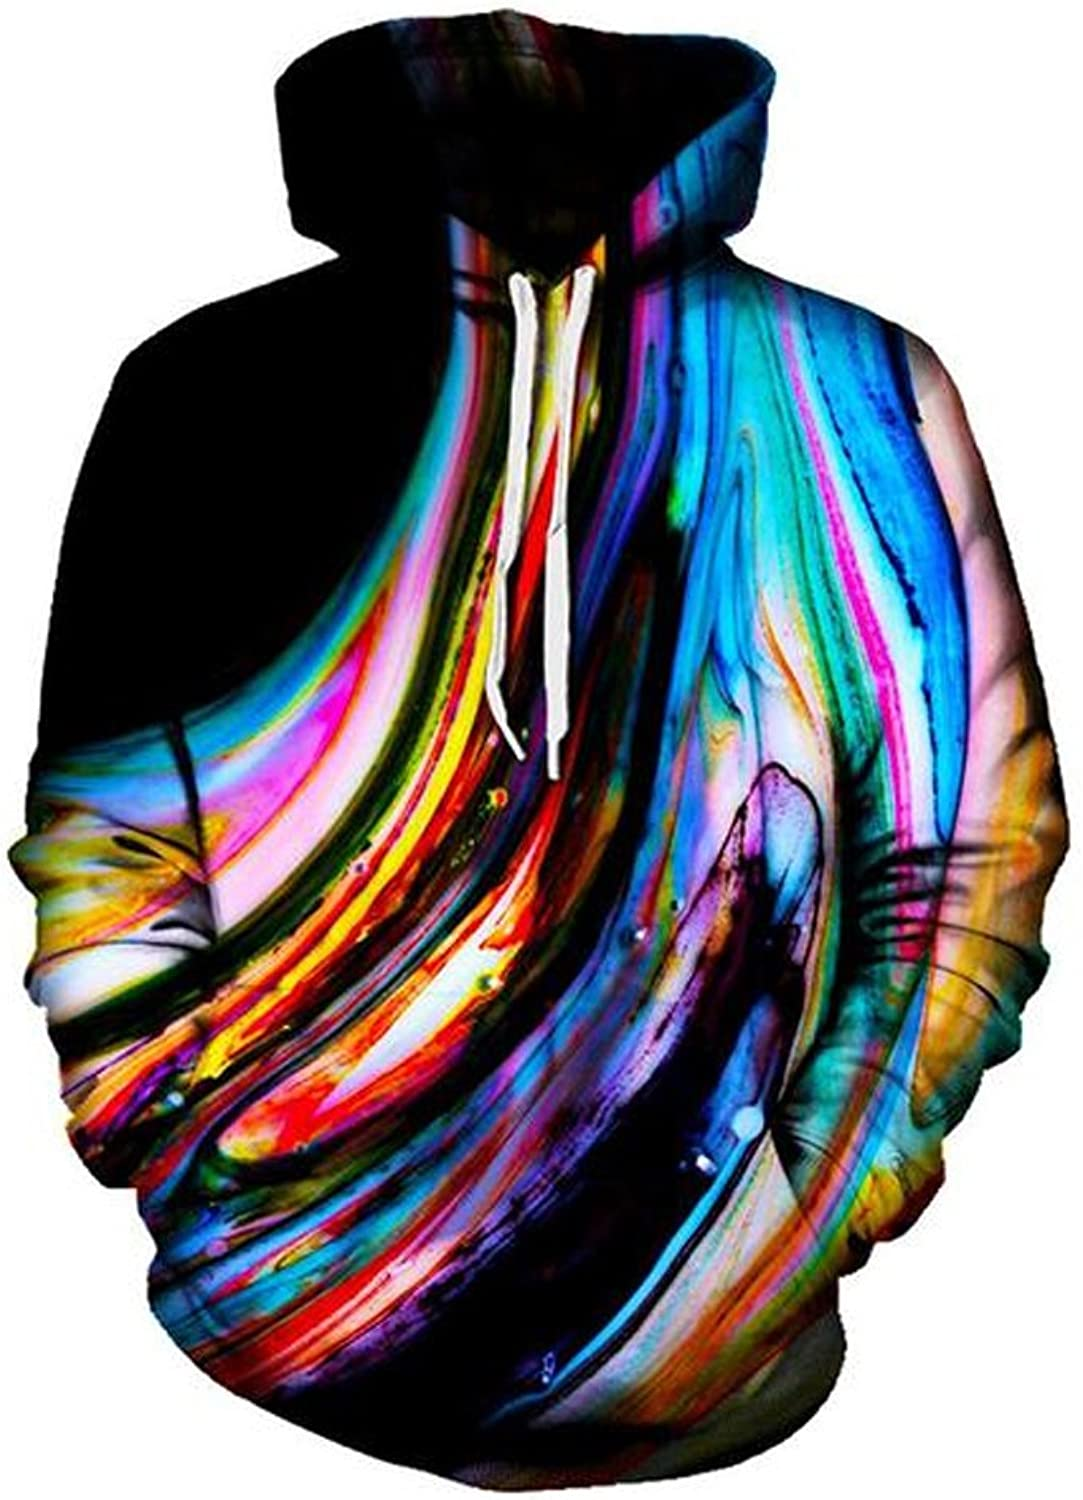 Noctum X Truth Interstellar One Hoodie - High Resolution All Over Print Graphics